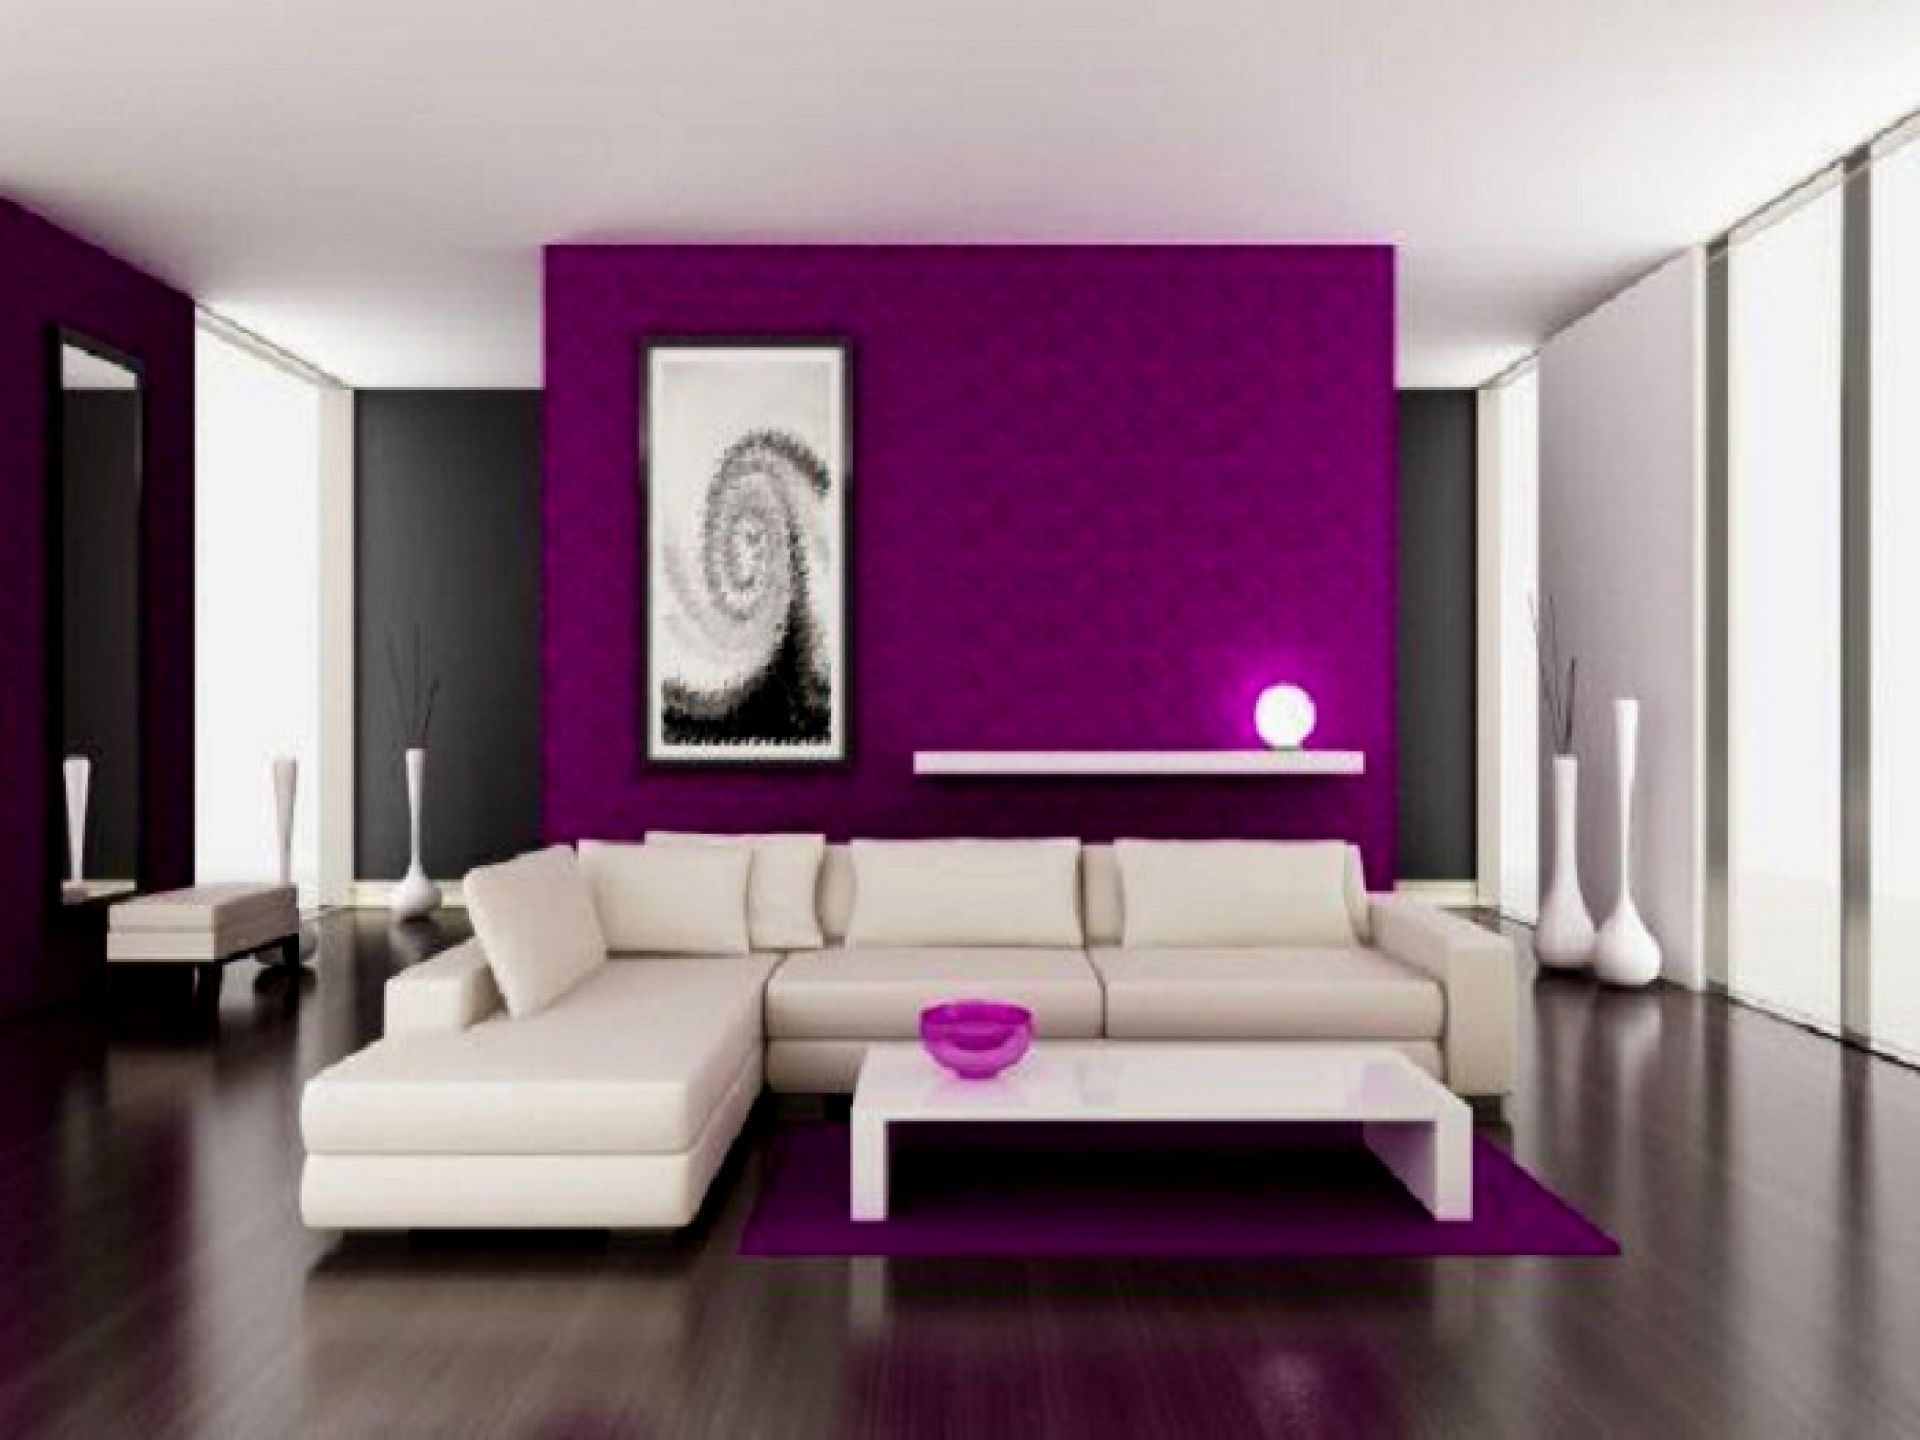 kitchen velvet dp modern ultra sofa room dining plush purple living amazon furniture com